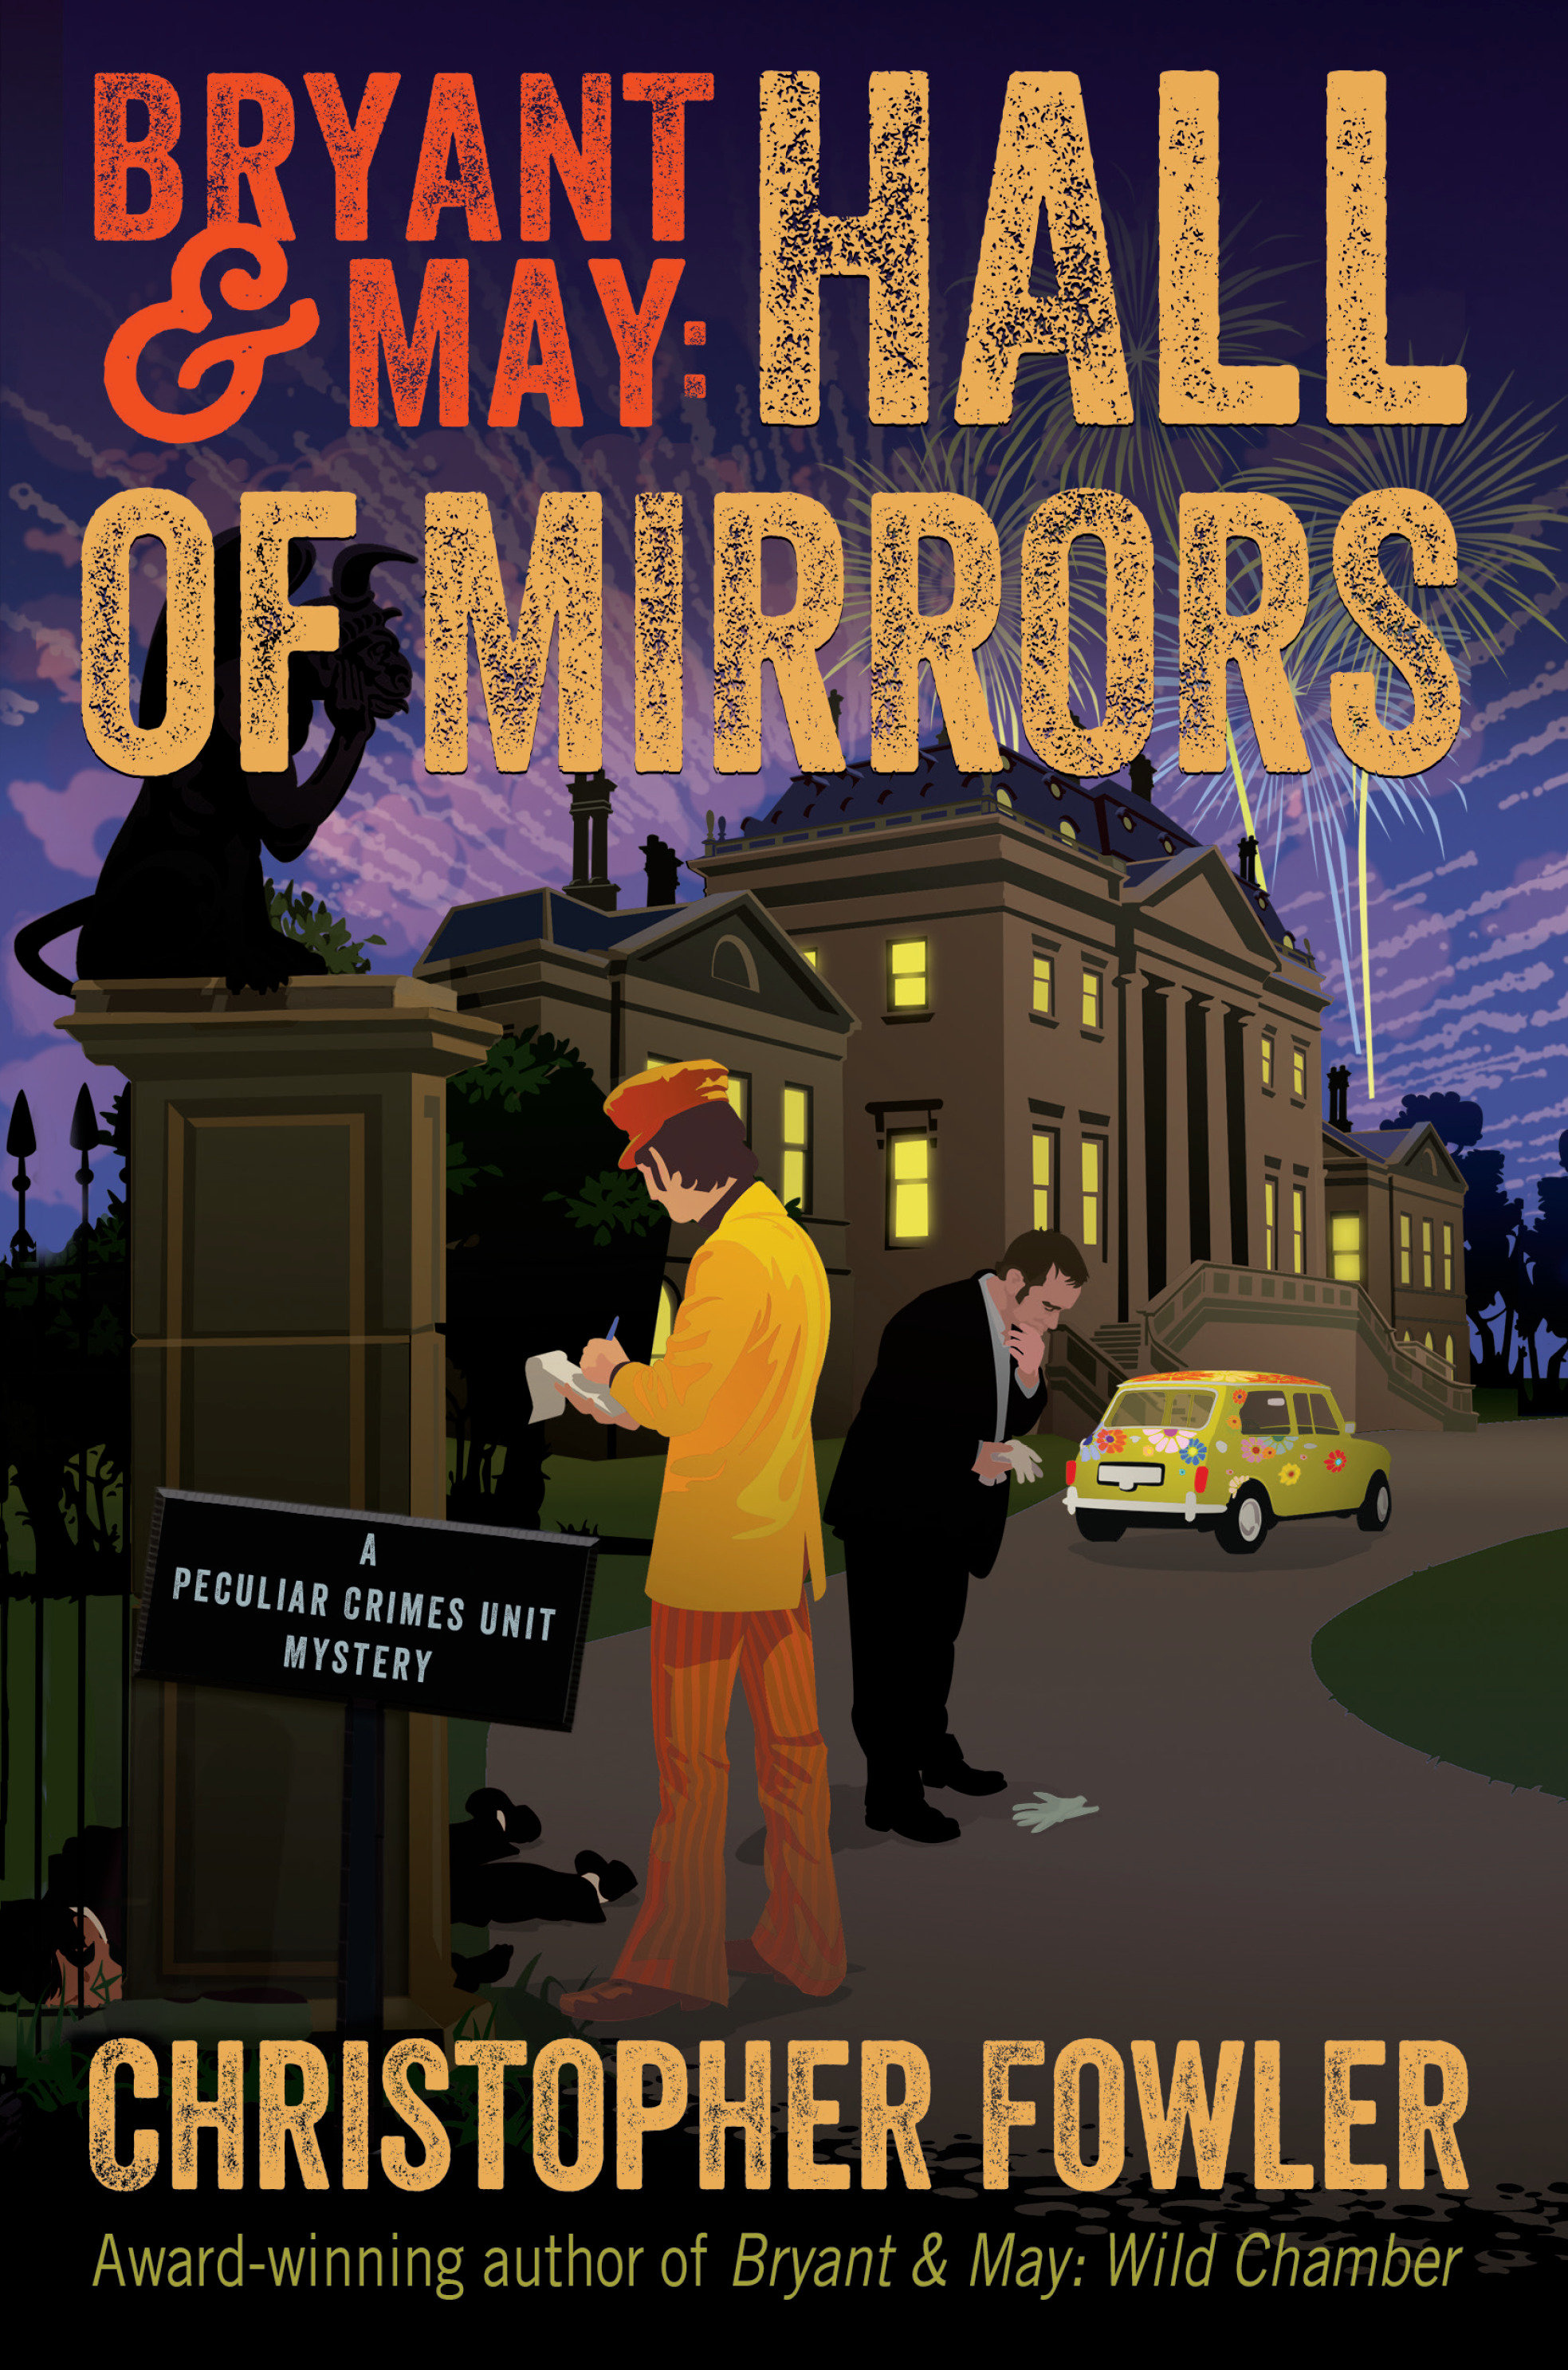 Bryant & May: Hall of Mirrors A Peculiar Crimes Unit Mystery